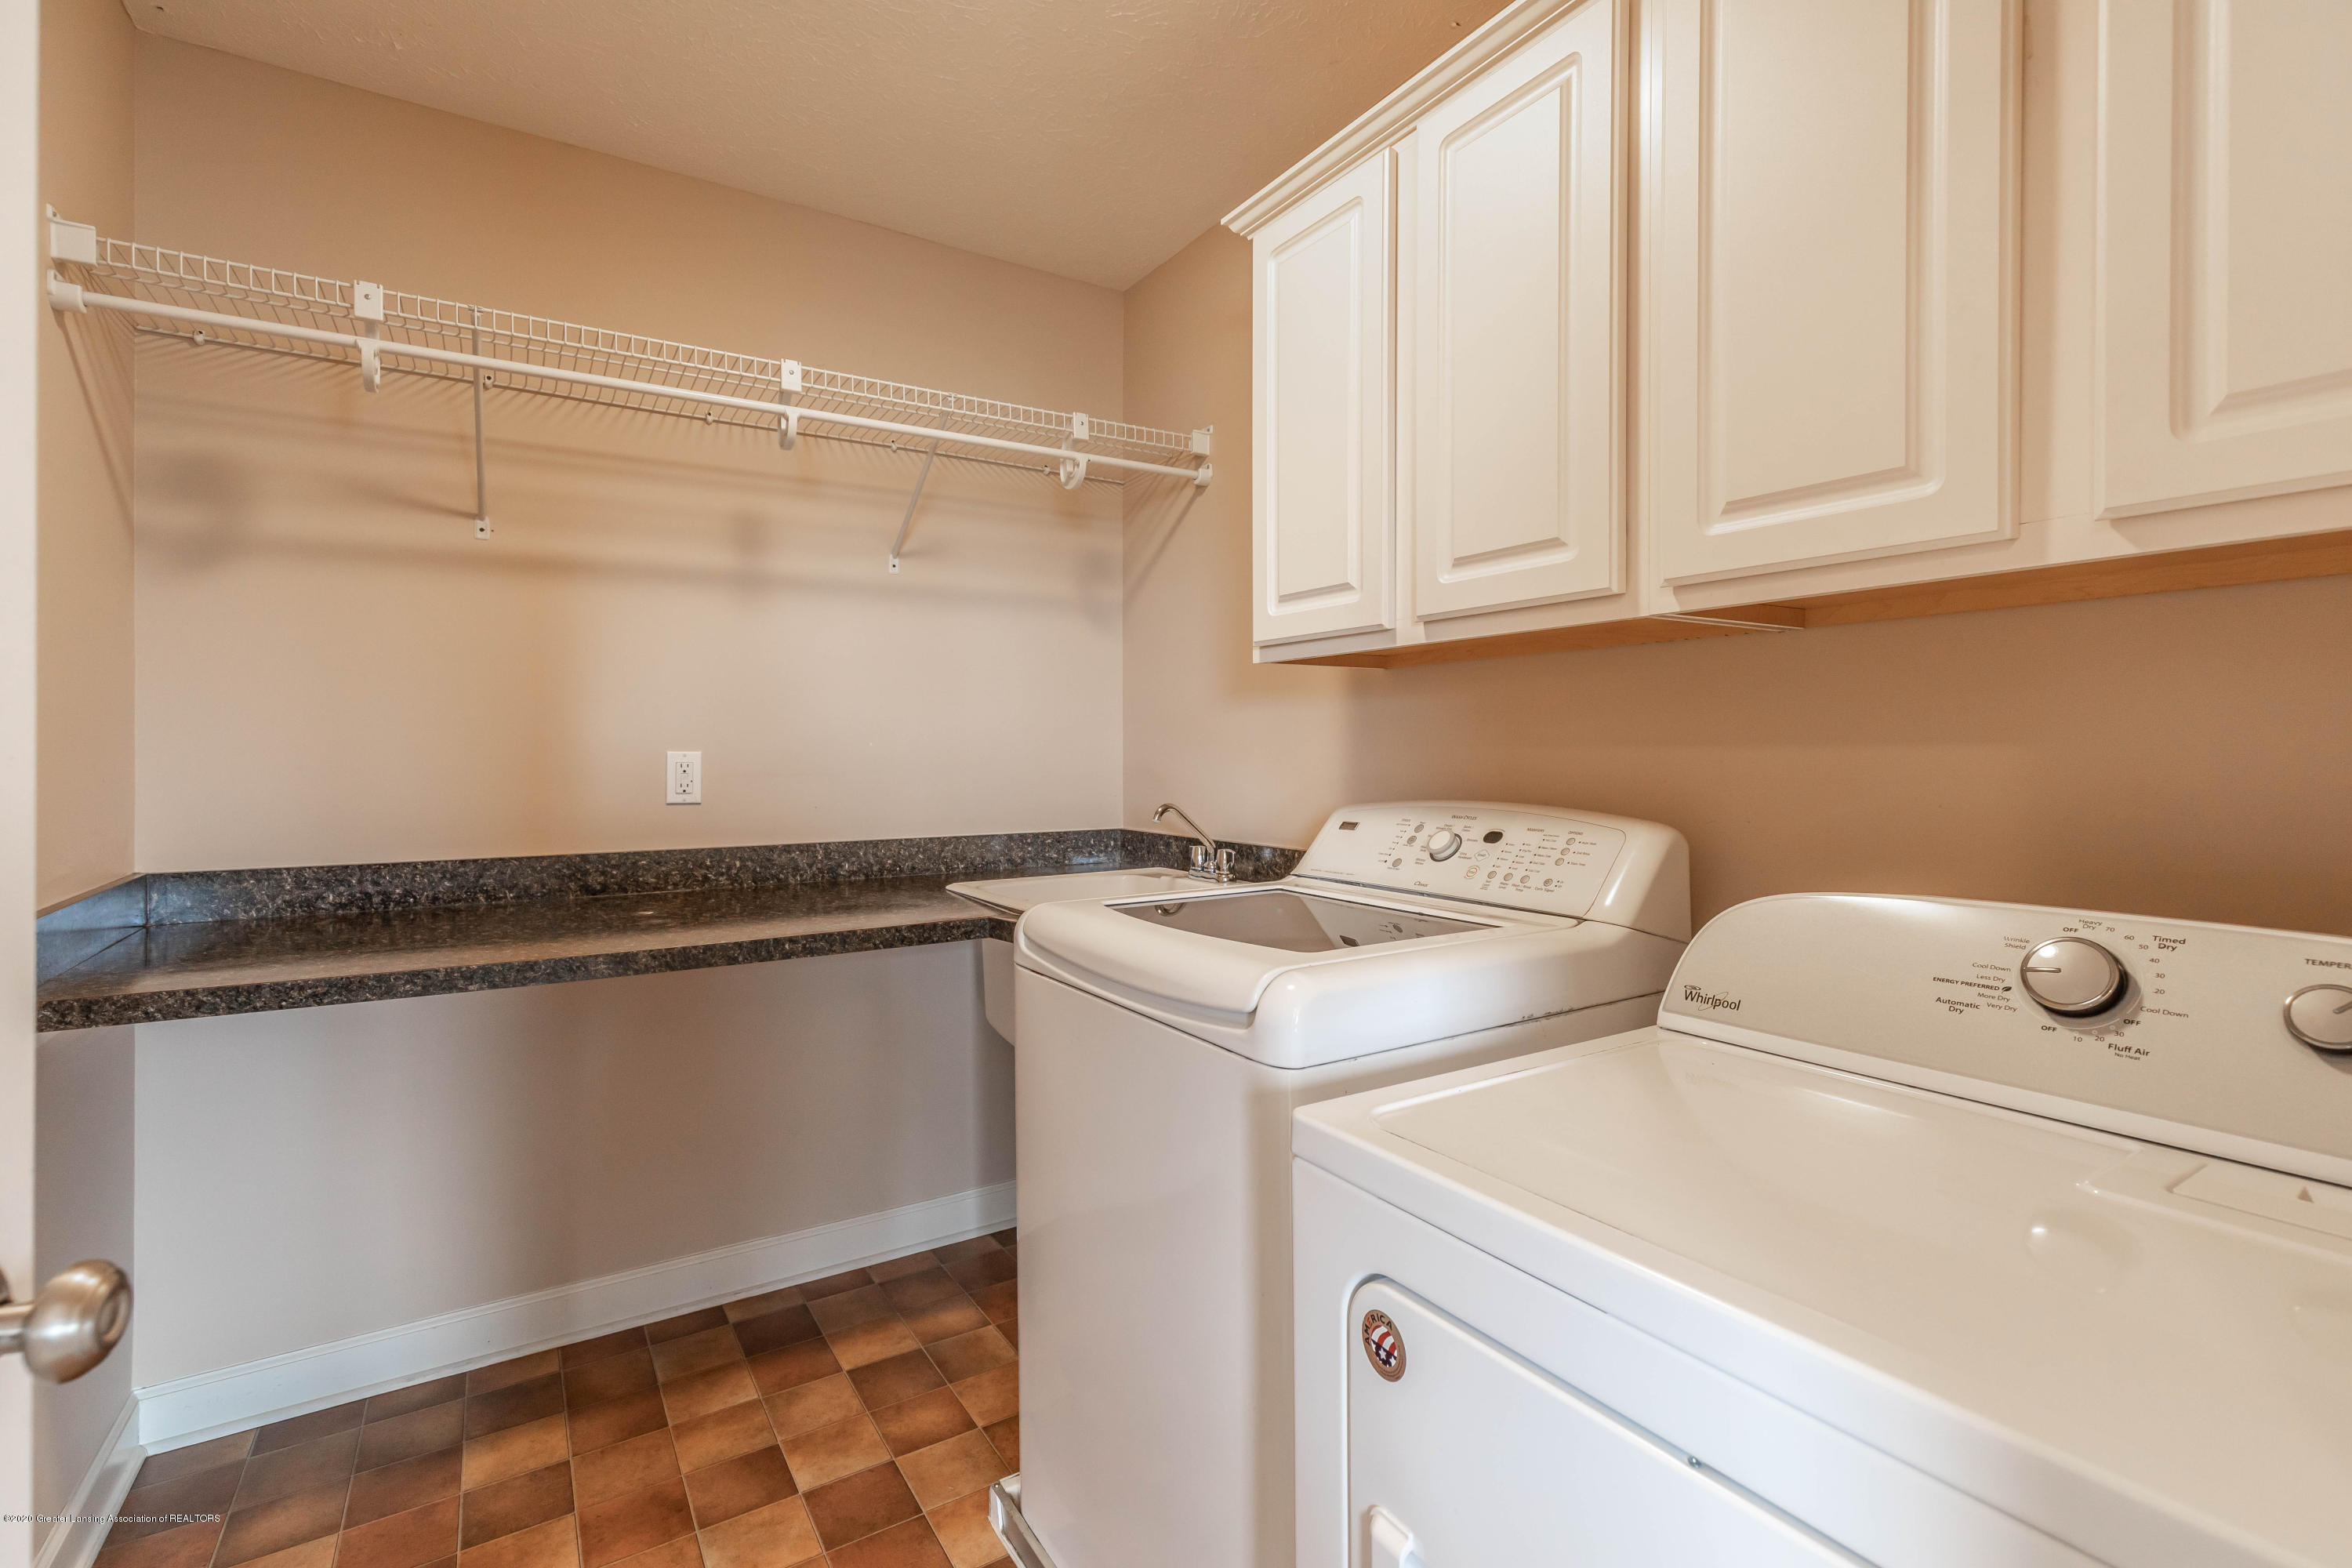 12810 Chartreuse Dr - chartreuselaundry (1 of 1) - 35